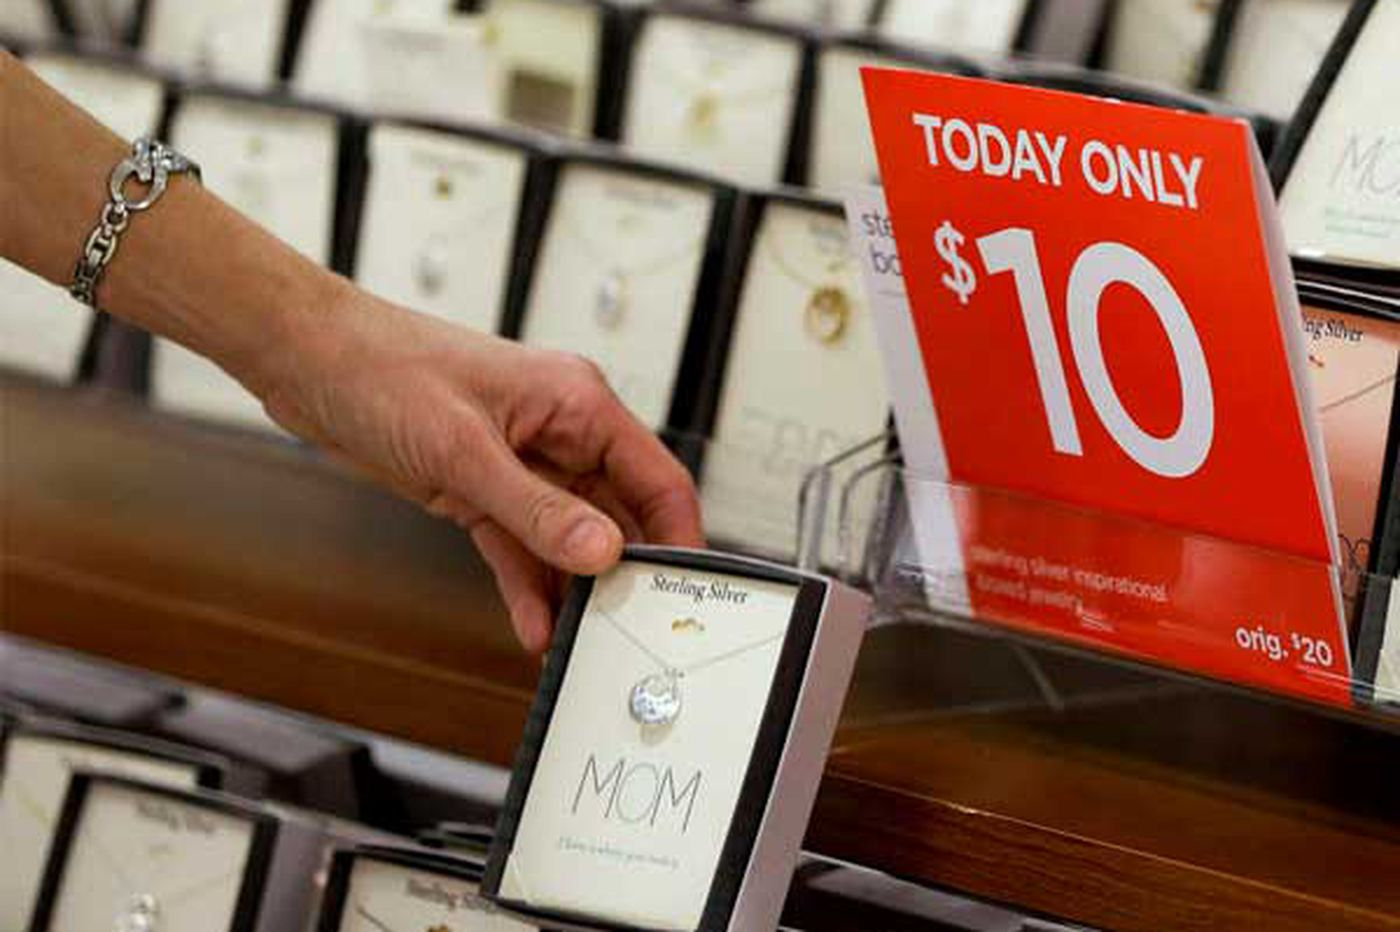 As shoppers stay away, stores ready to return to deep discounts